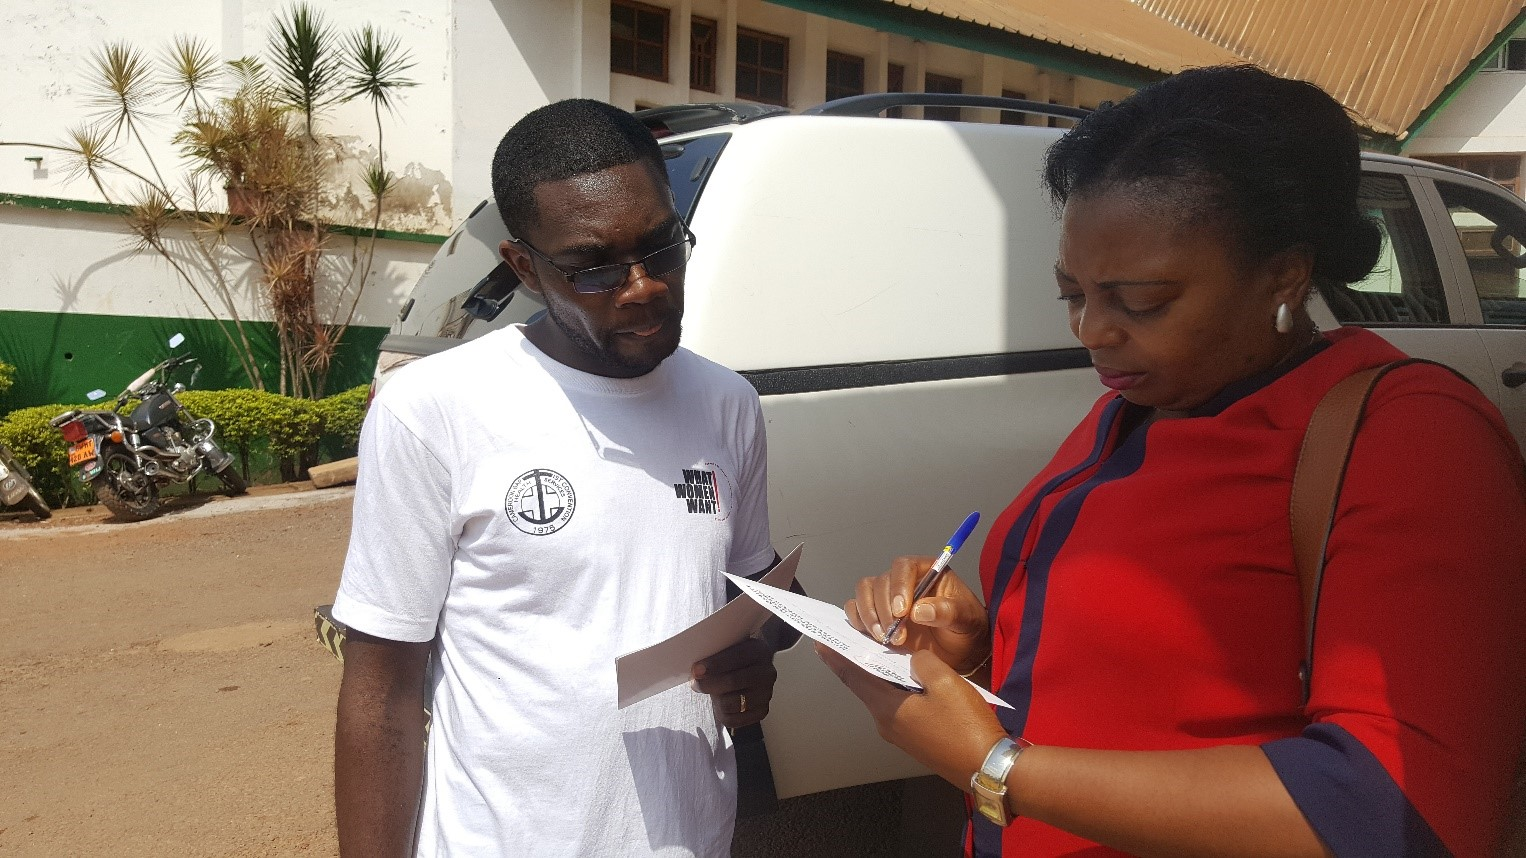 Mobilization_Cameroon_Ferdy with survey taker.jpg